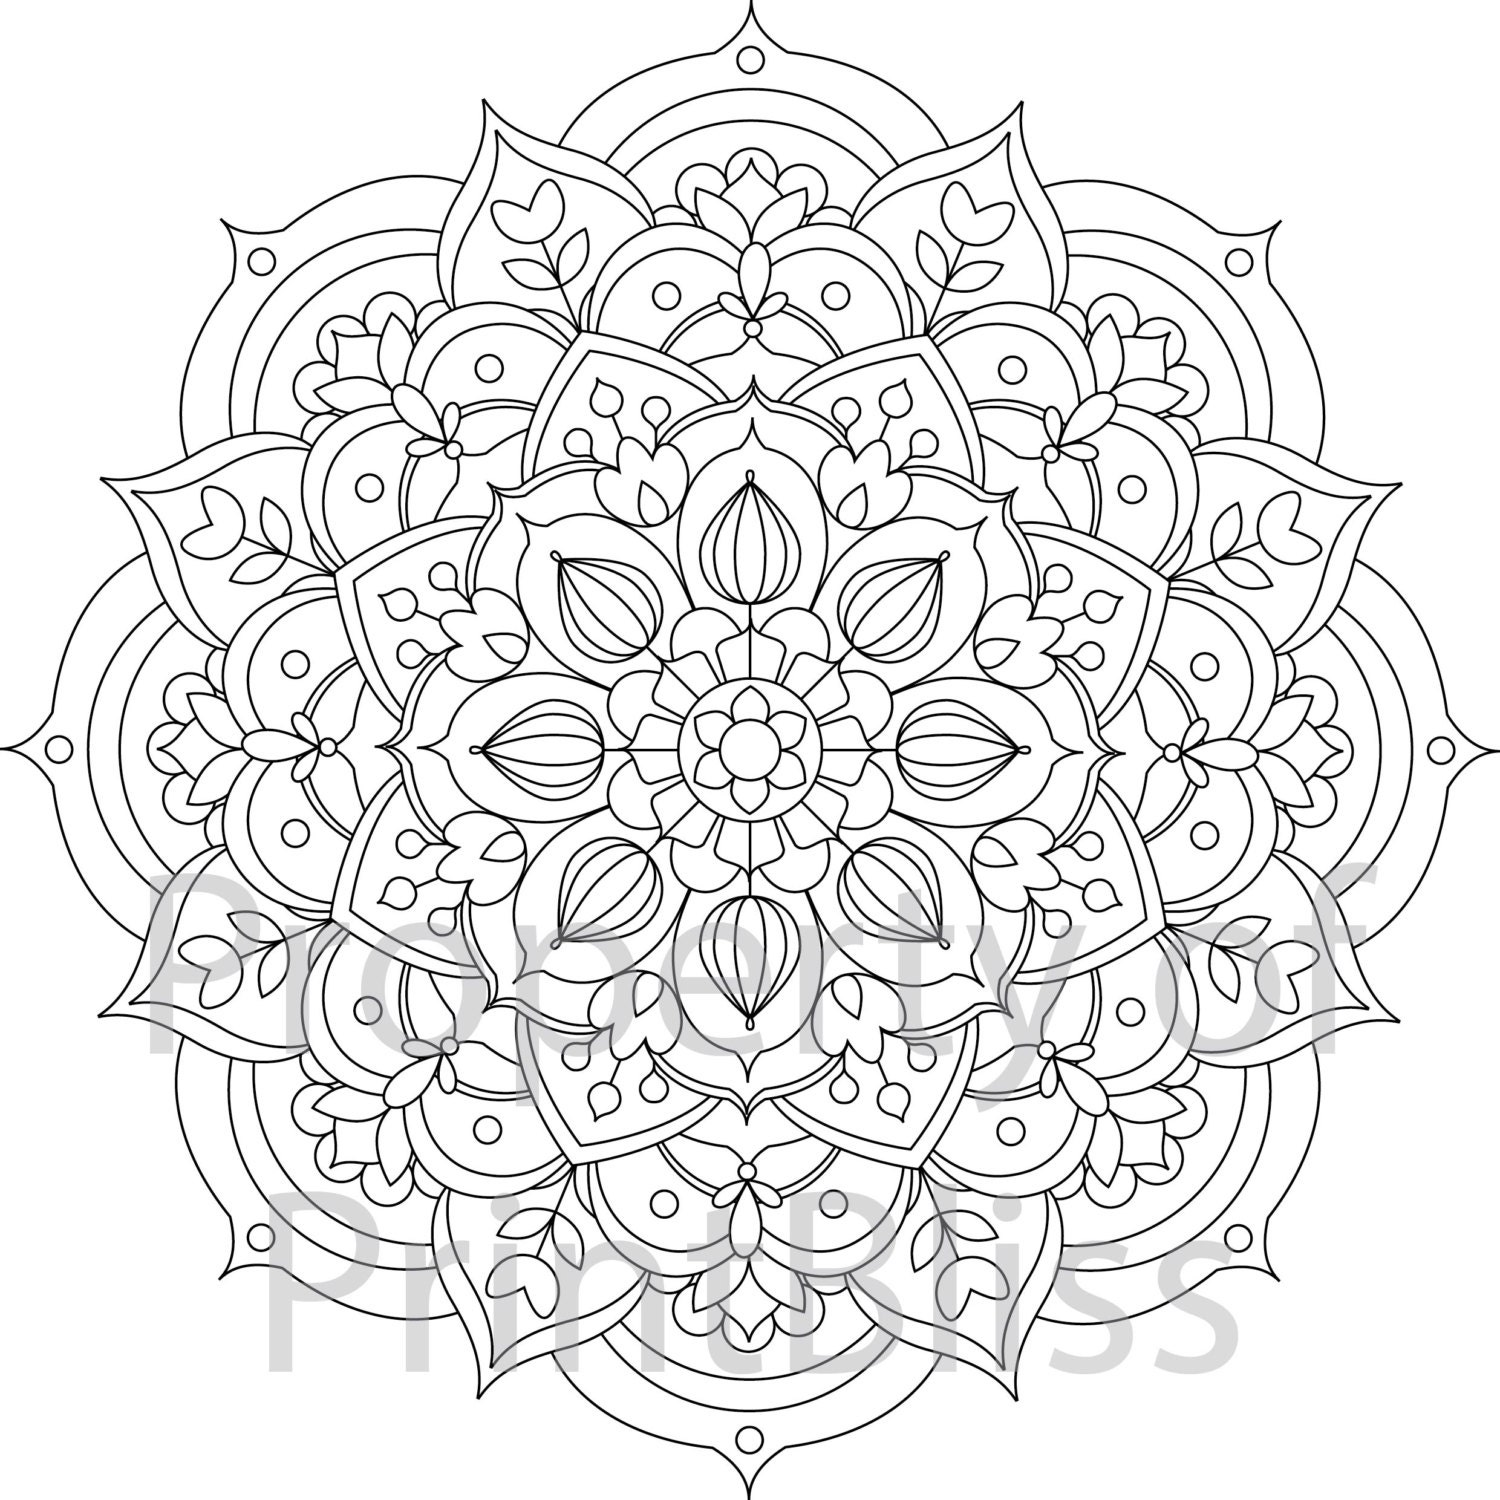 30 flower mandala printable coloring page. Black Bedroom Furniture Sets. Home Design Ideas